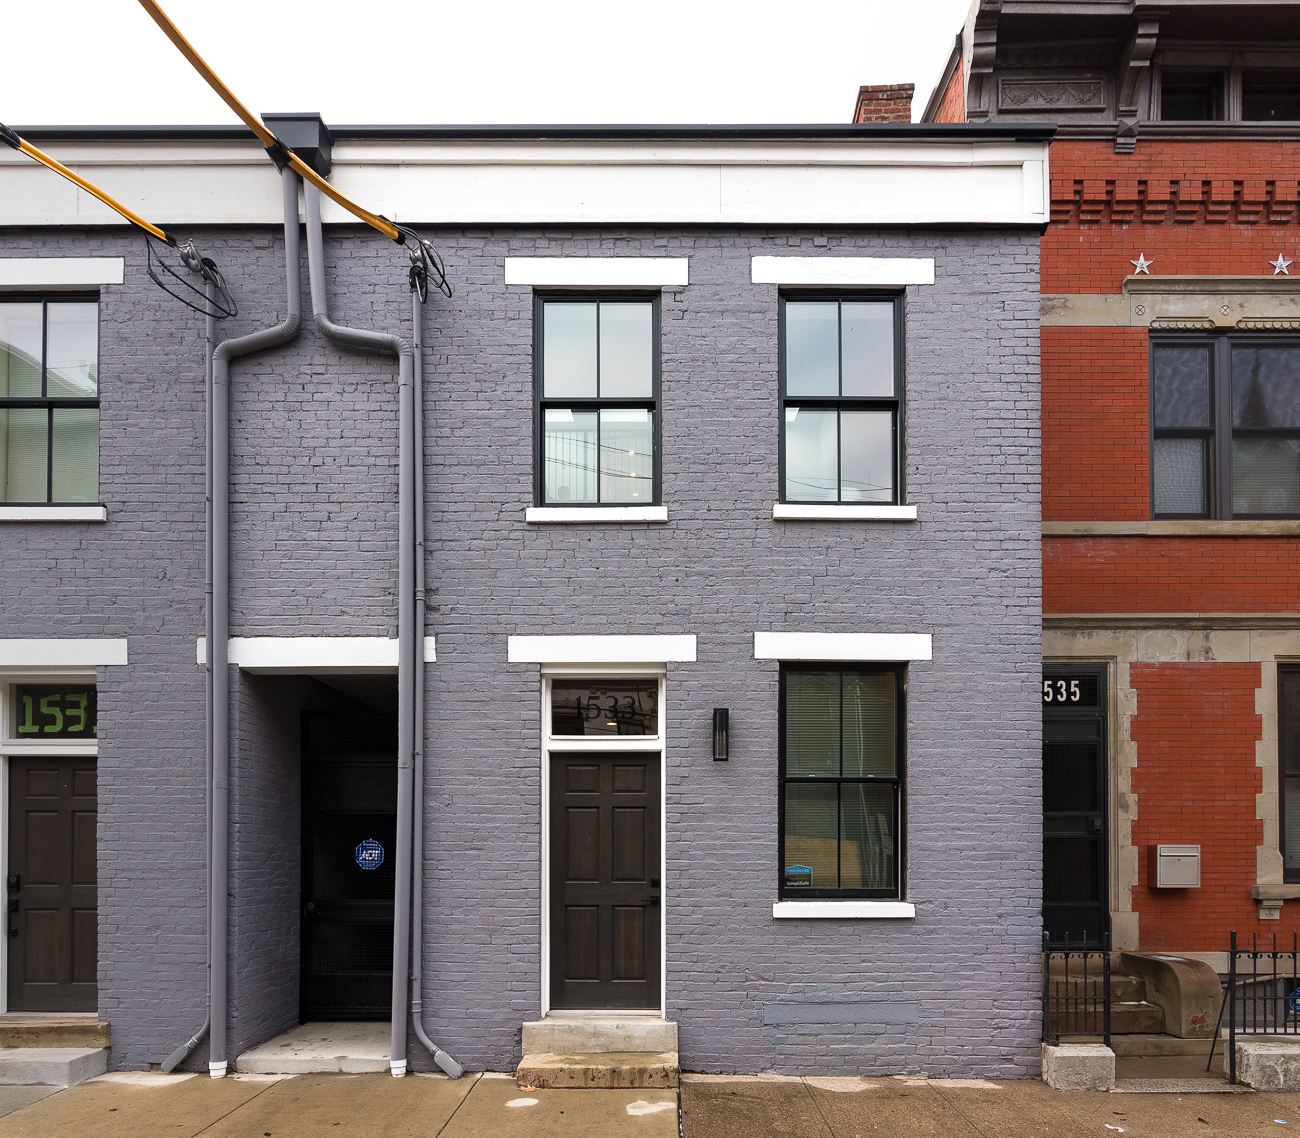 You know where Republic Street meets Liberty Street in Over-the-Rhine? Just south of that intersection is a grey single-family home that seems modest from the sidewalk, but inside you'll find a new home that's anything but. / Image: Phil Armstrong, Cincinnati Refined // Published: 2.4.19